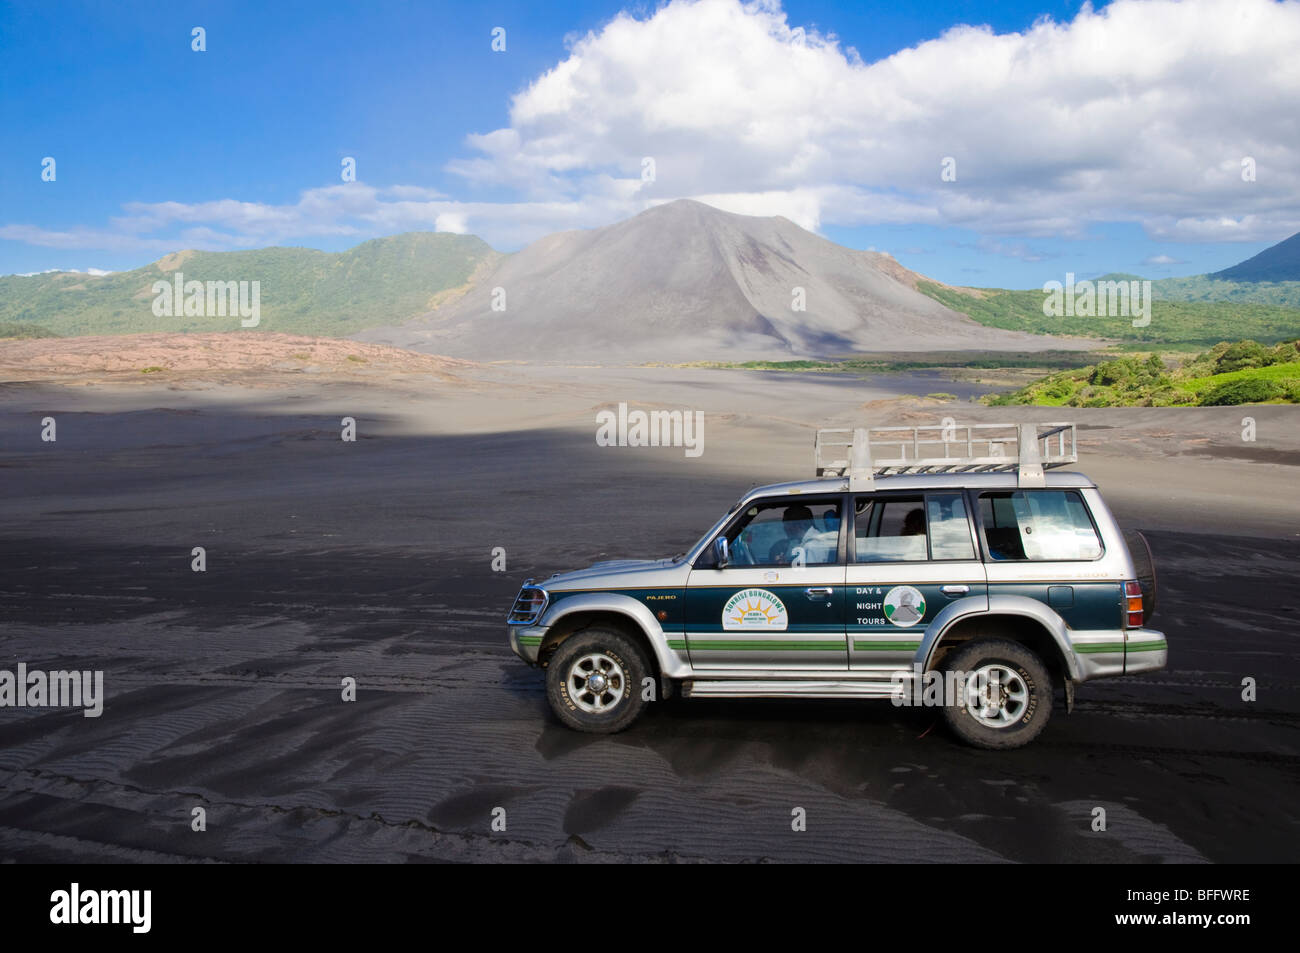 4WD vehicle in front of an active volcano. Click for details. Stock Photo